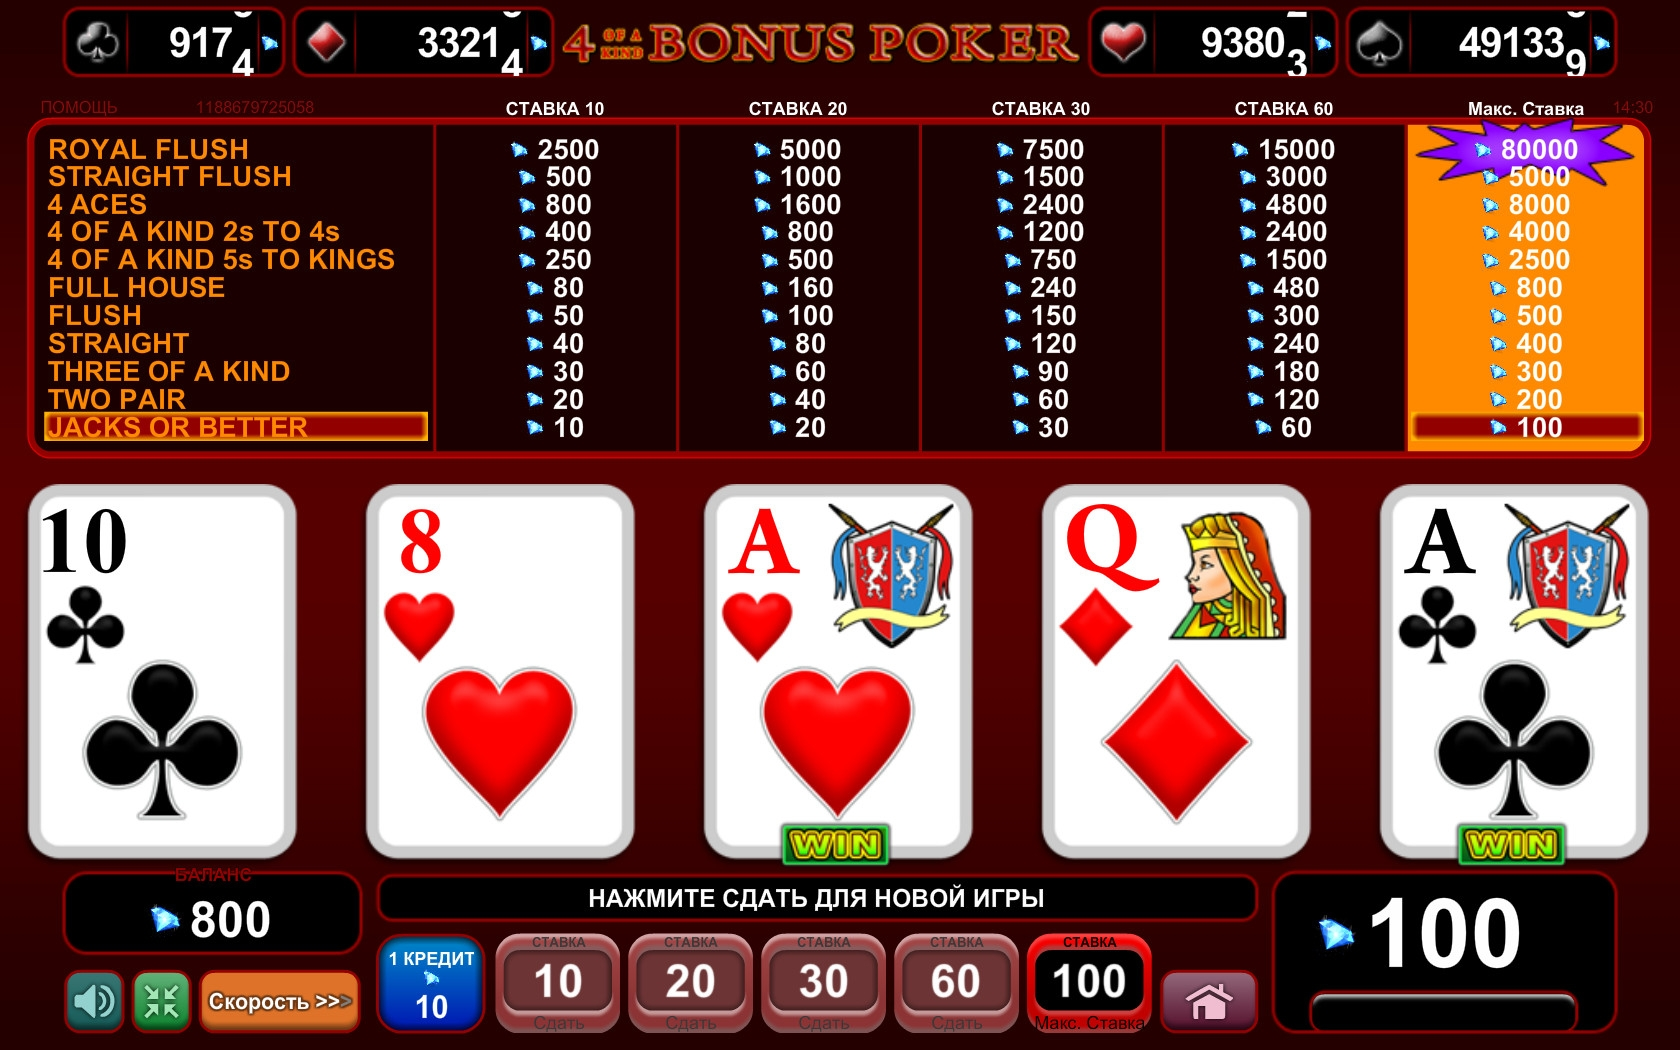 casino online free bonus poker 4 of a kind